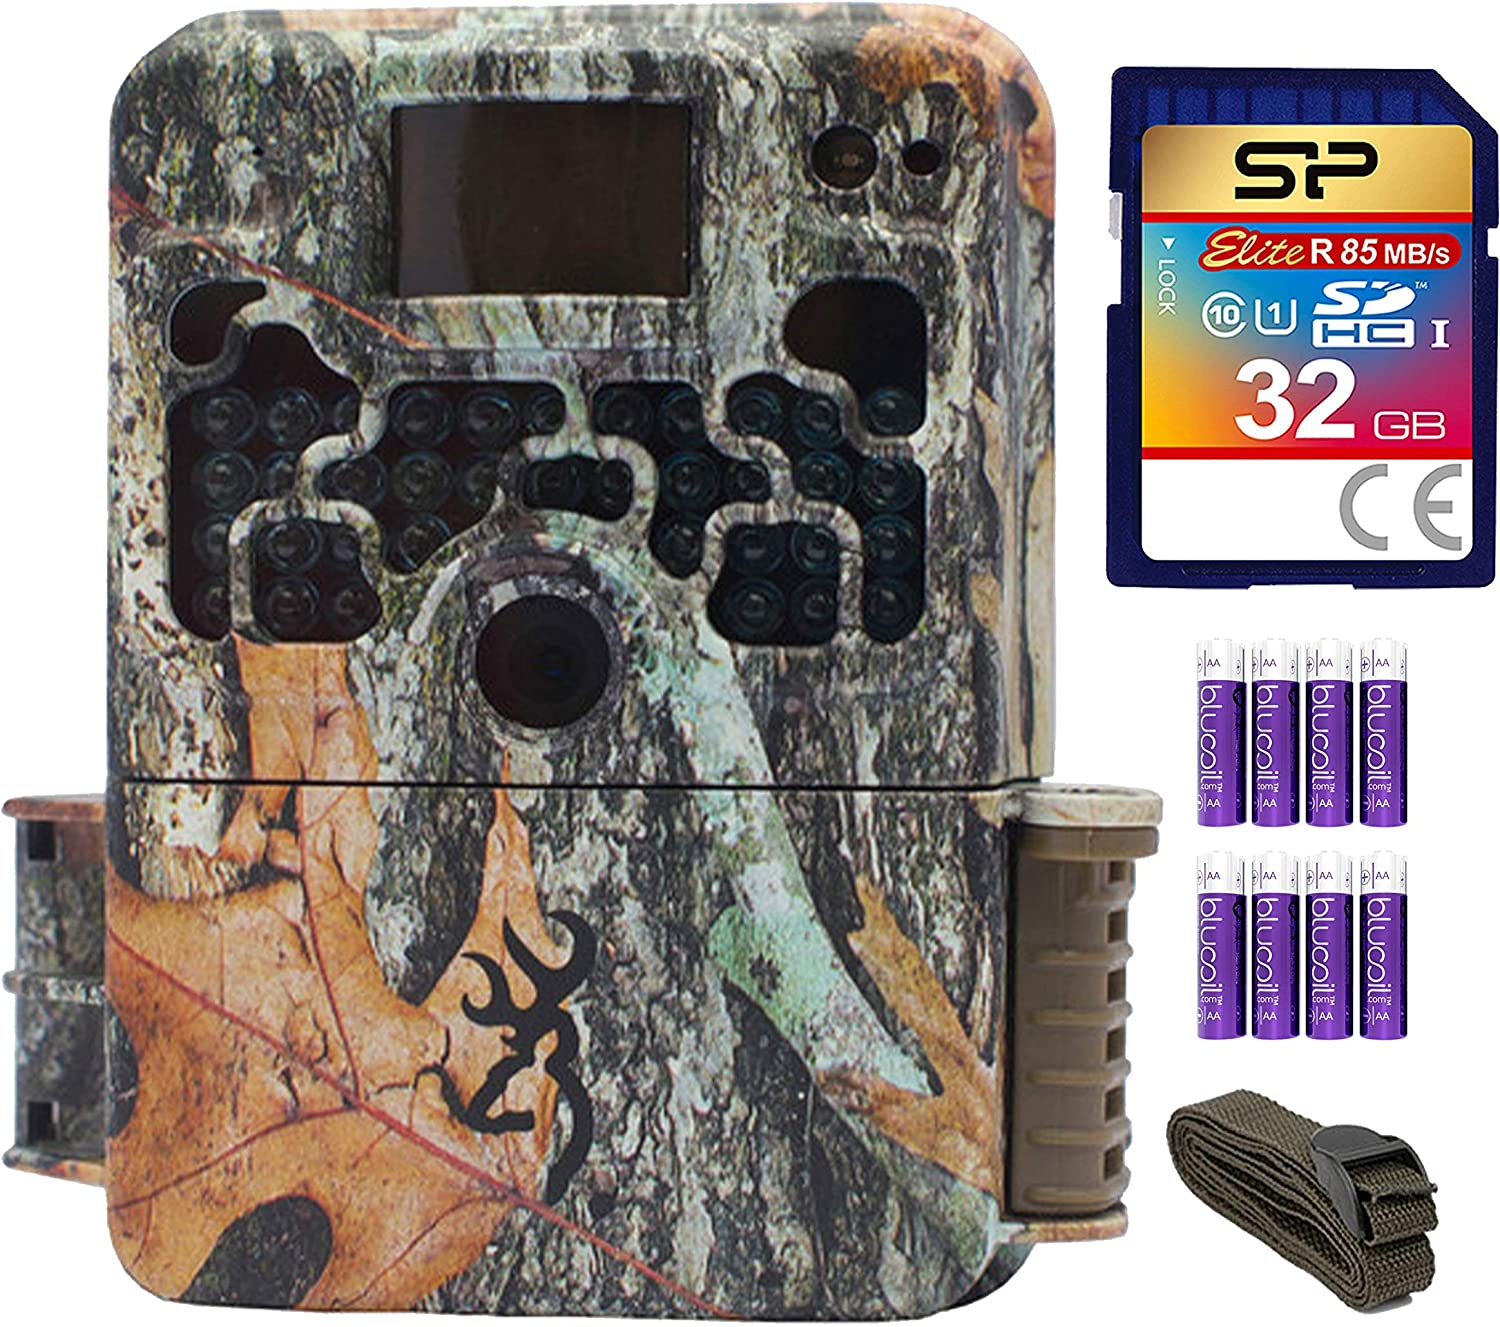 Blucoil Browning Trail Cameras 16MP Image Resolution HD Camera Bundle with 6-FT Tree Strap Mount, Silicon Power 32GB Class 10 SD Card, and 8 AA Batteries